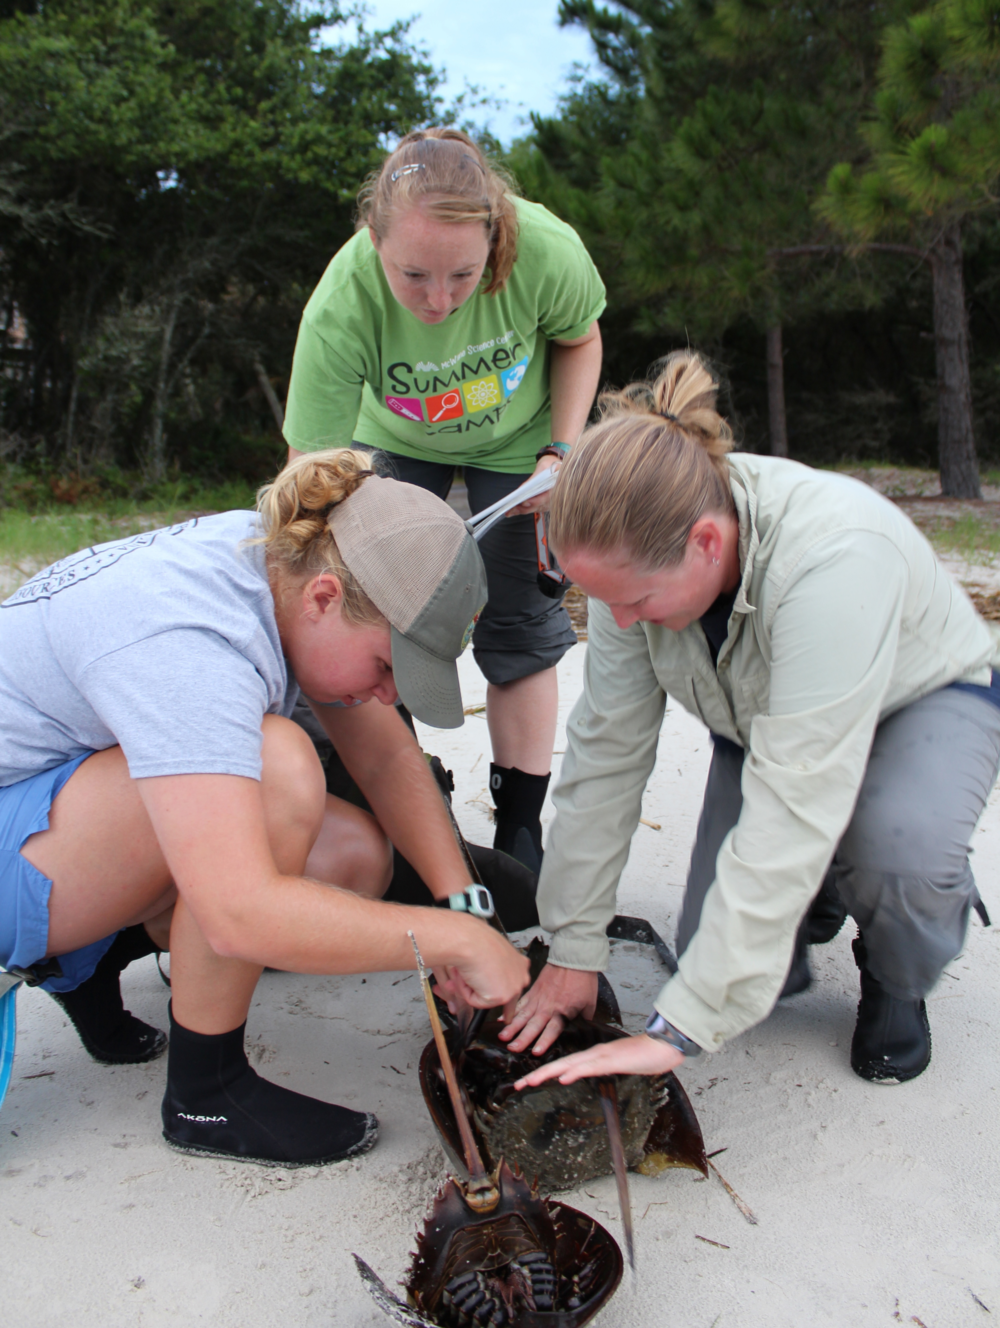 SCDNR staff review horseshoe crab anatomy before a survey. (Photo: E. Weeks/SCDNR)